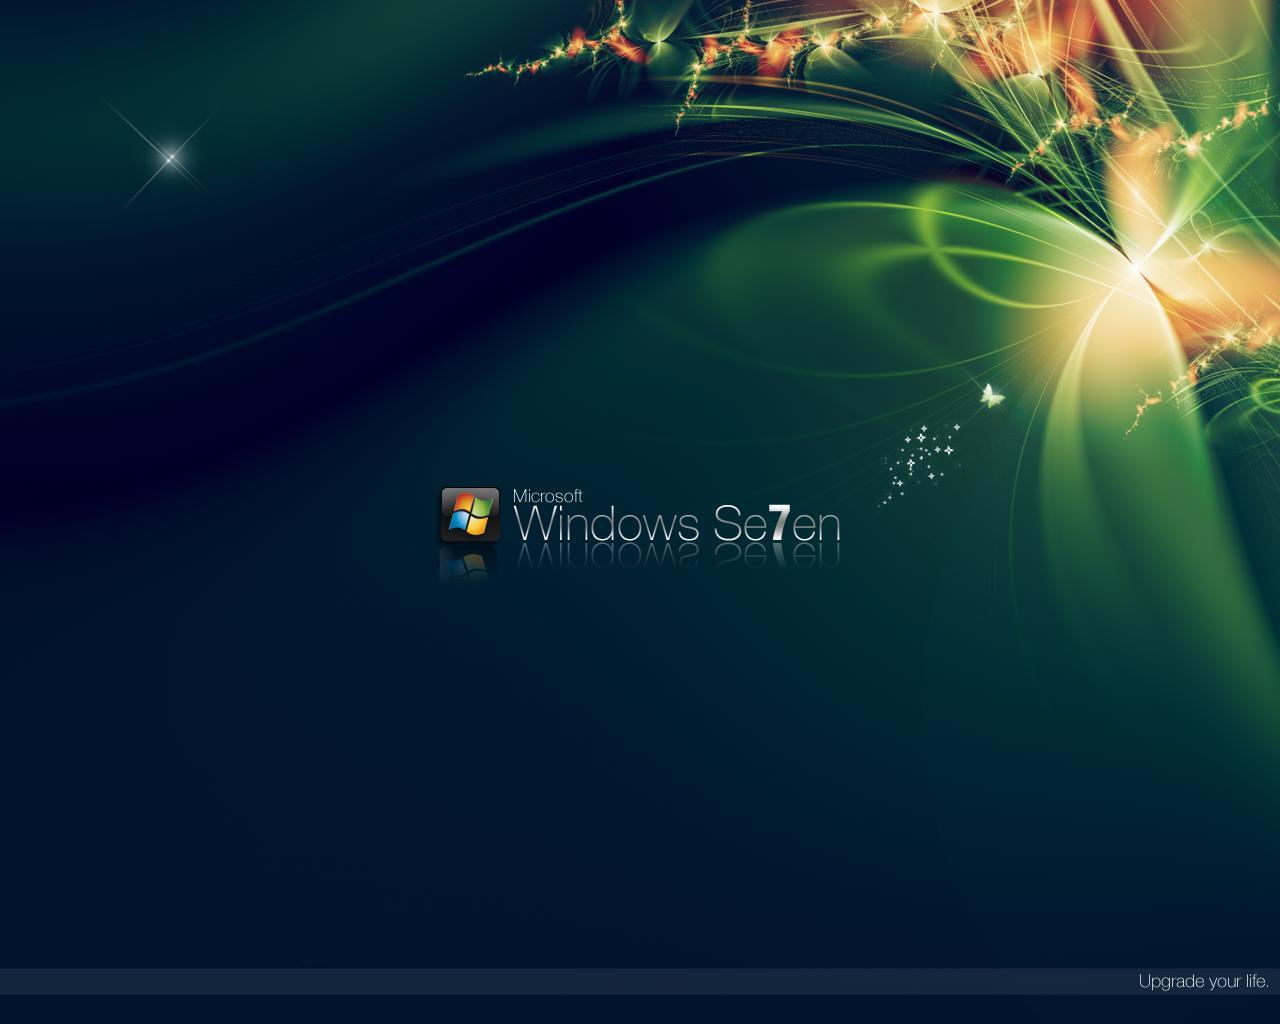 Windows7 Wallpapers (12-12-2008)